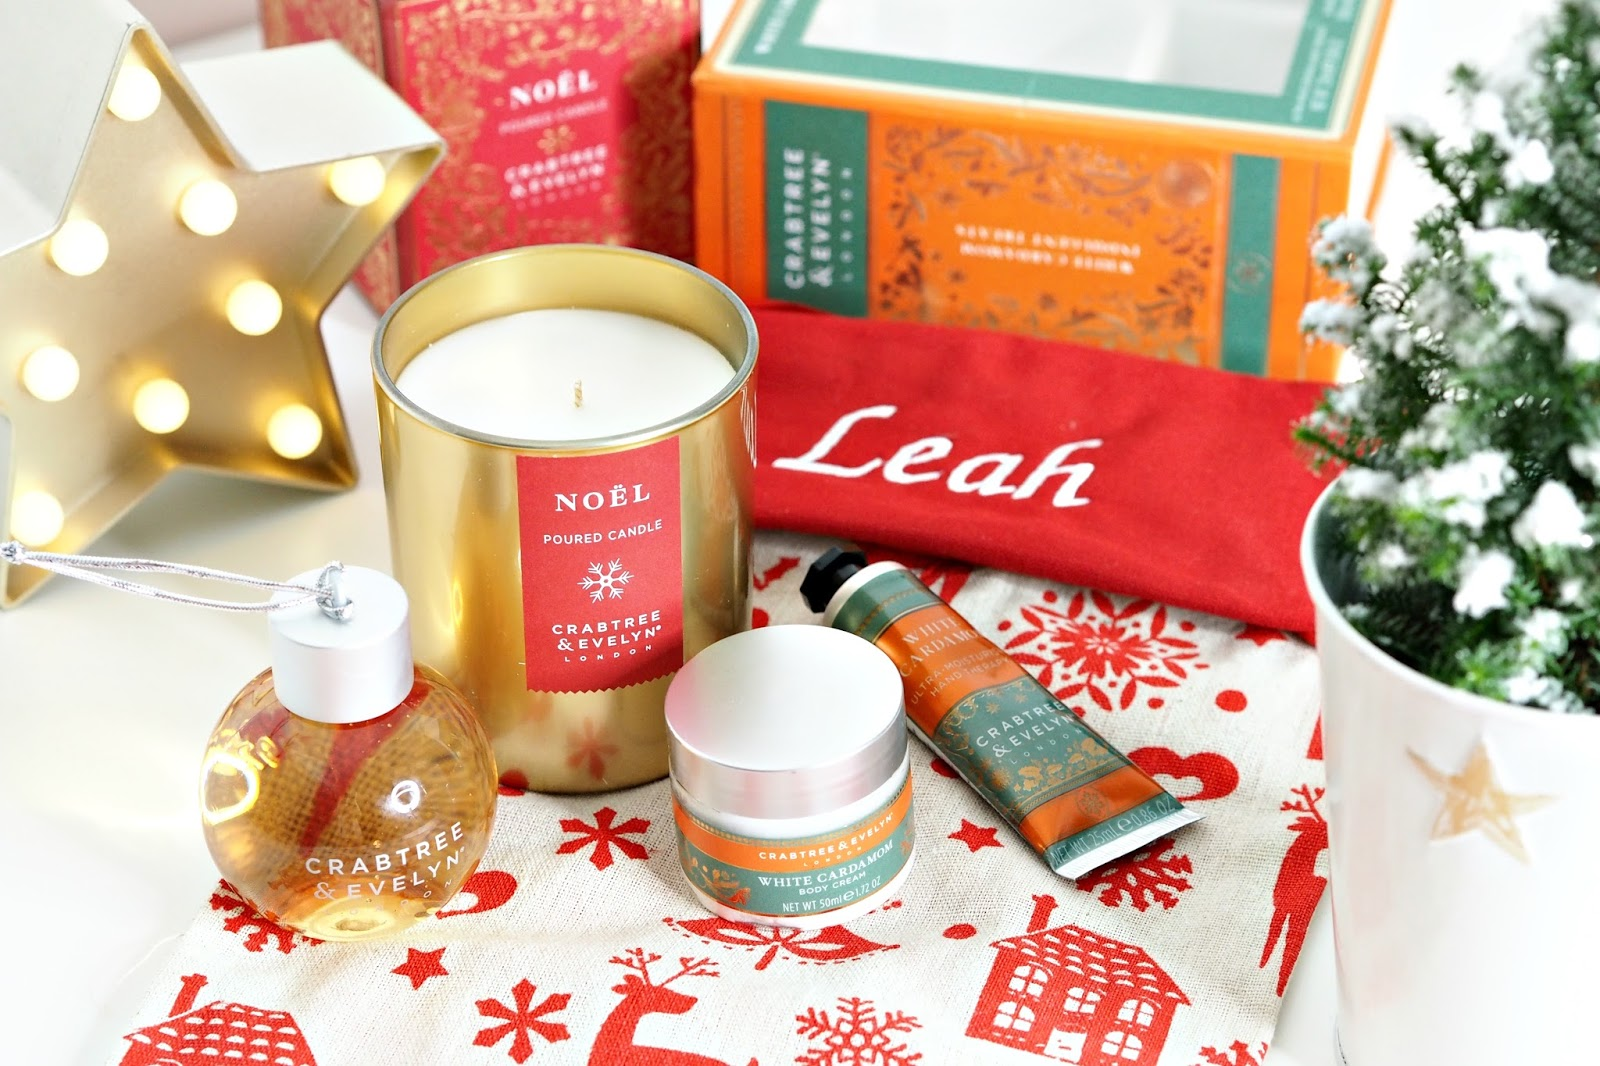 Christmas gift sets with Crabtree & Evelyn